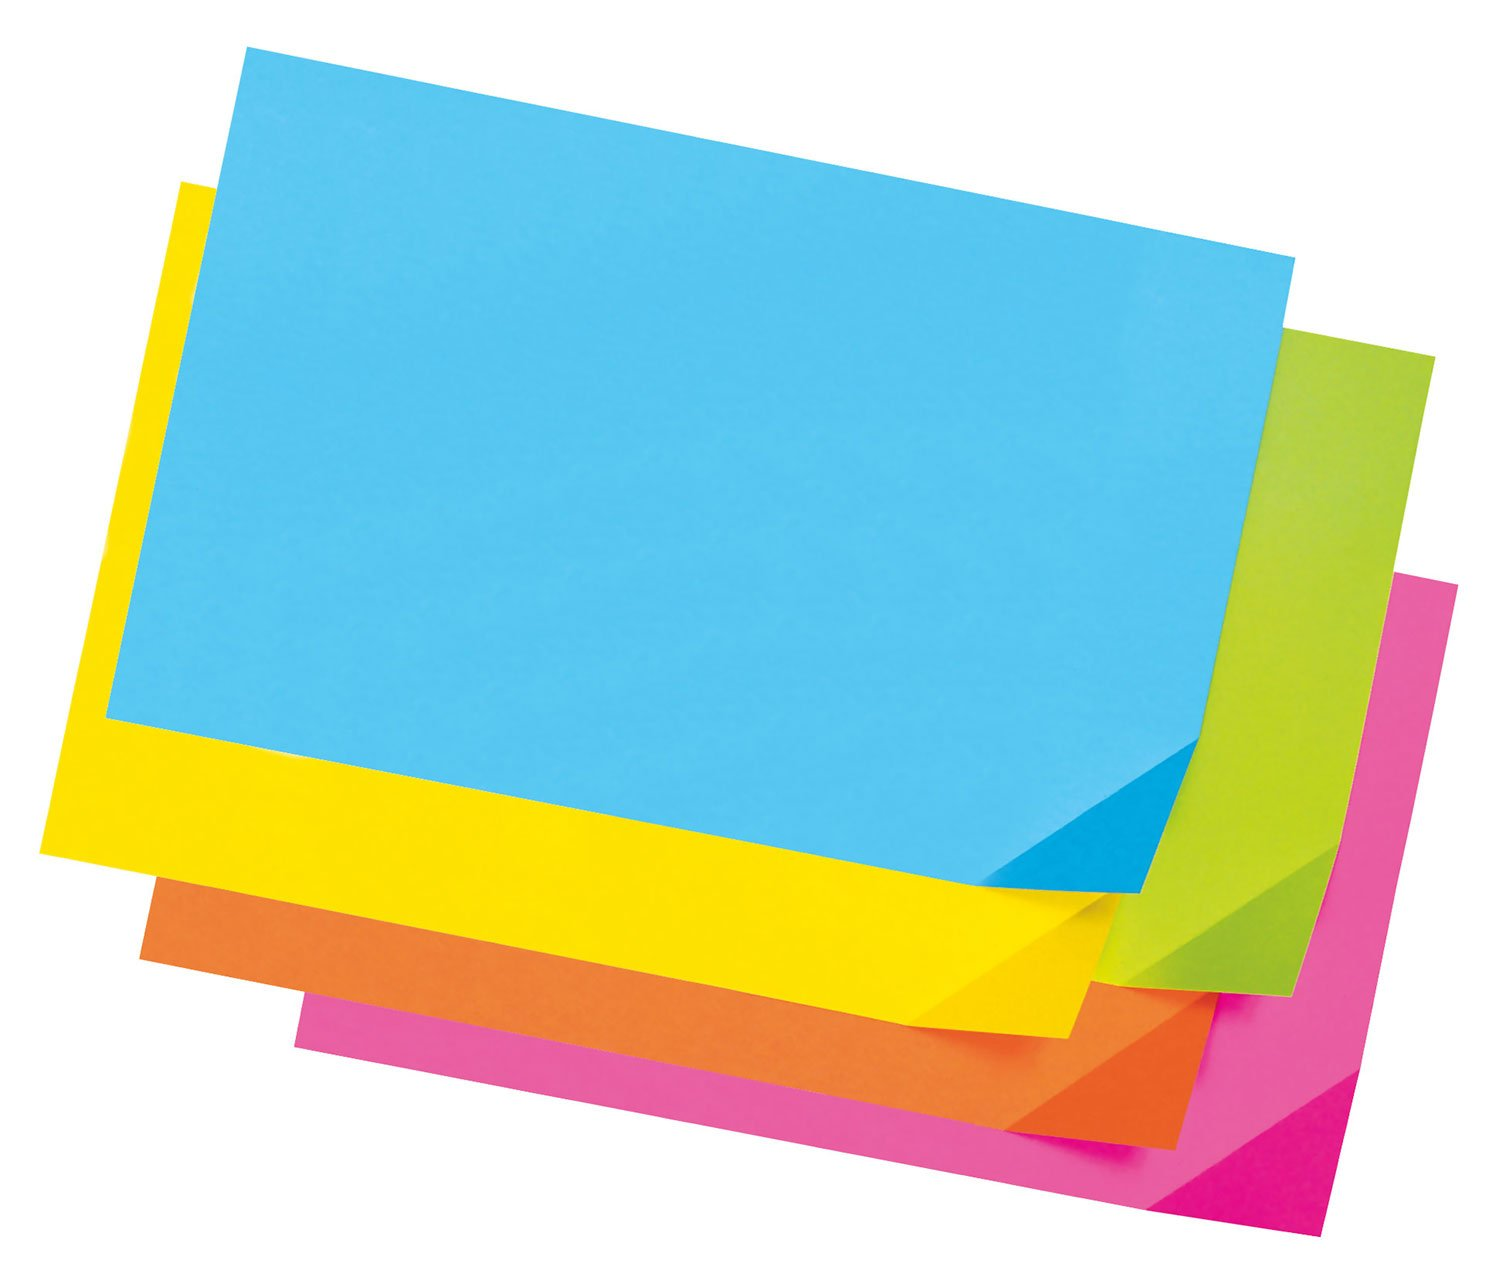 Pacon Colorwave Super Bright Tagboard, 12 x 18 Inches, Assorted Colors, 100 Sheets (1712)